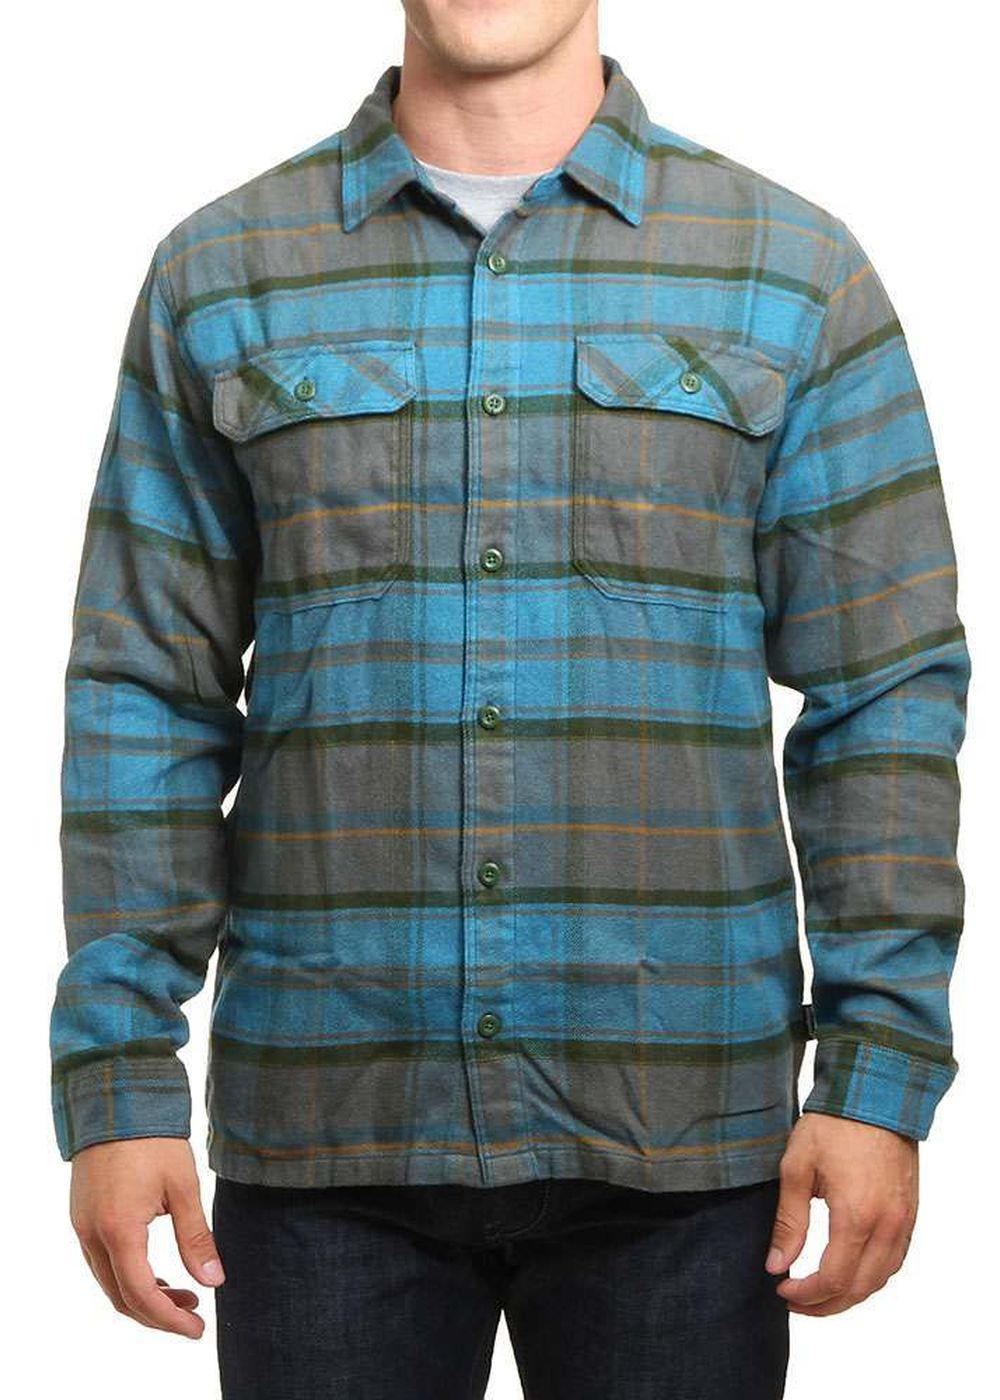 patagonia-fjord-flannel-shirt-filter-blue